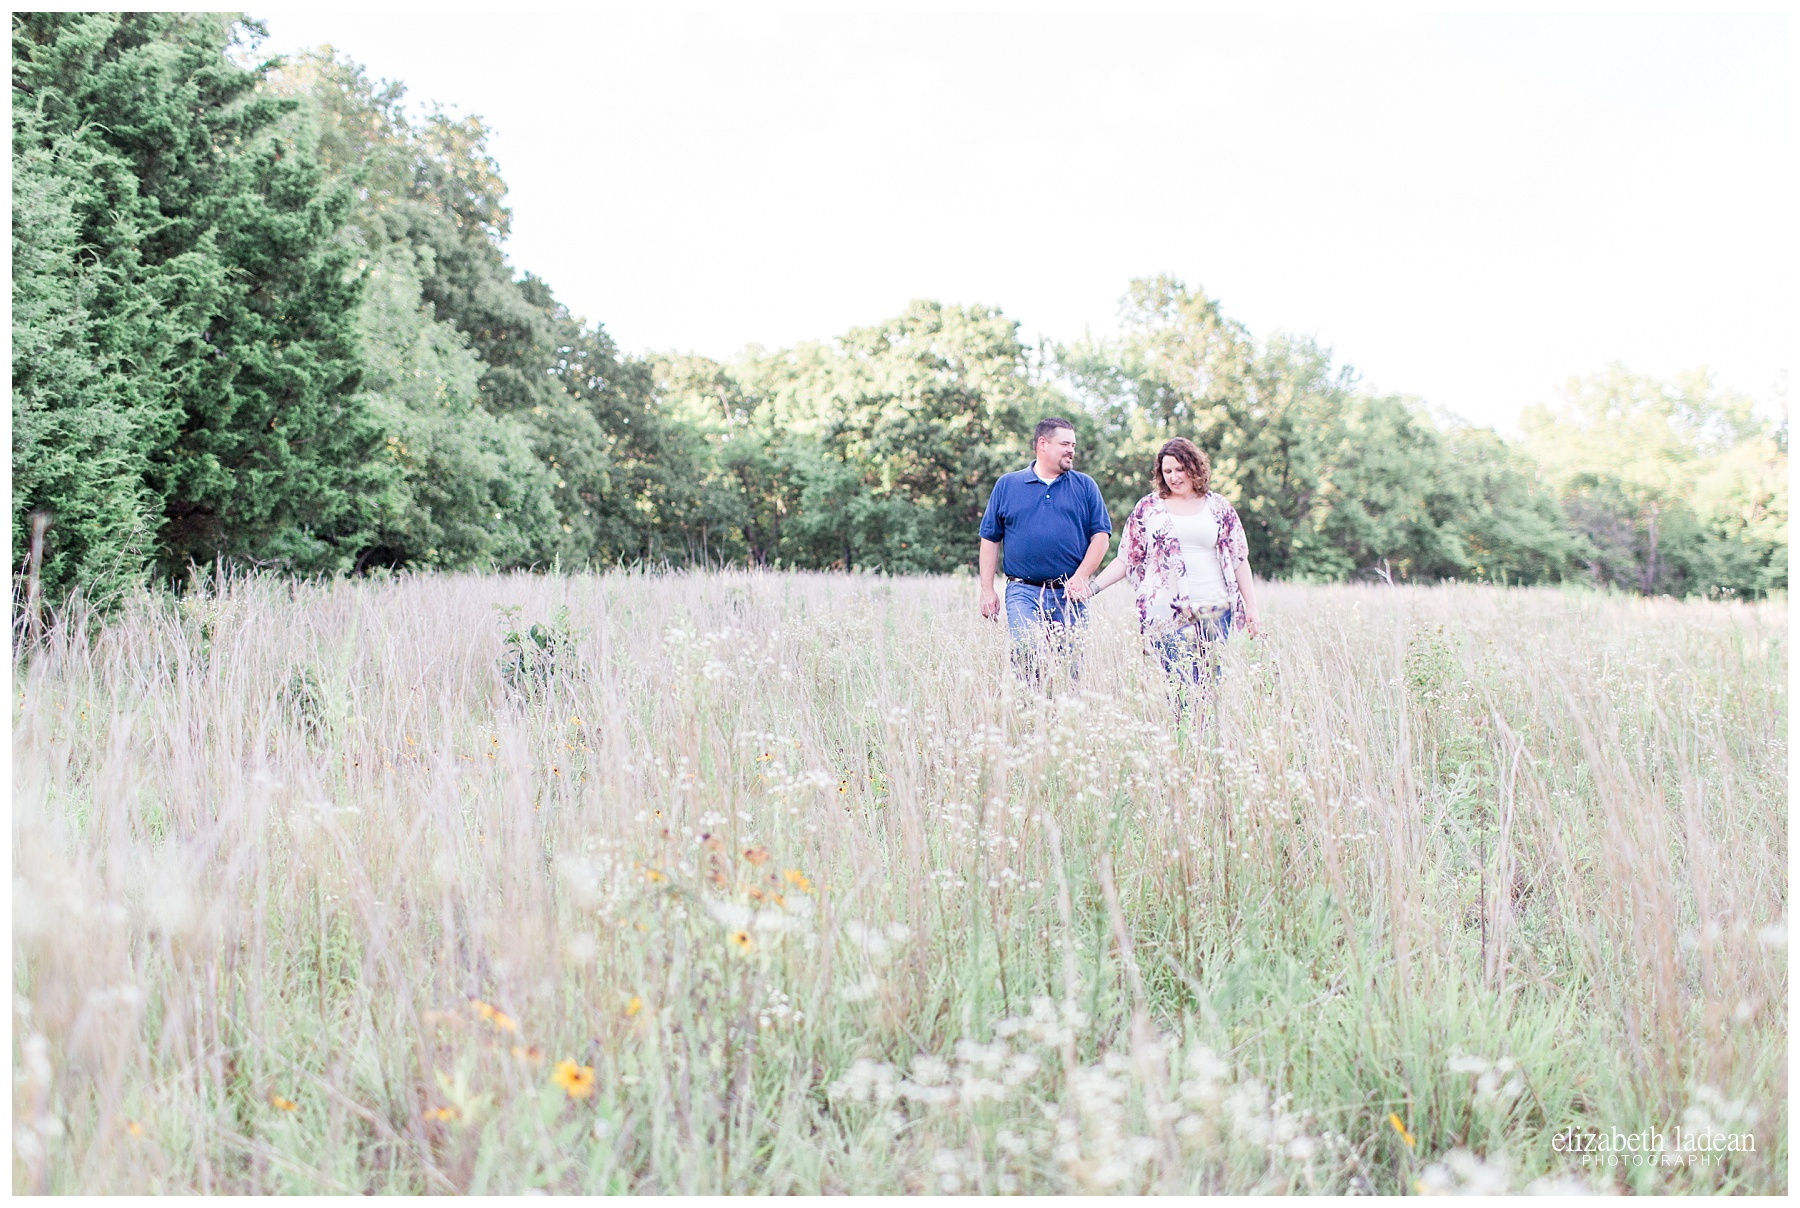 Kansas-City-Engagement-Photography-Shawnee-Mission-H+JJ2017-Elizabeth-Ladean-Photography-photo_1915.jpg